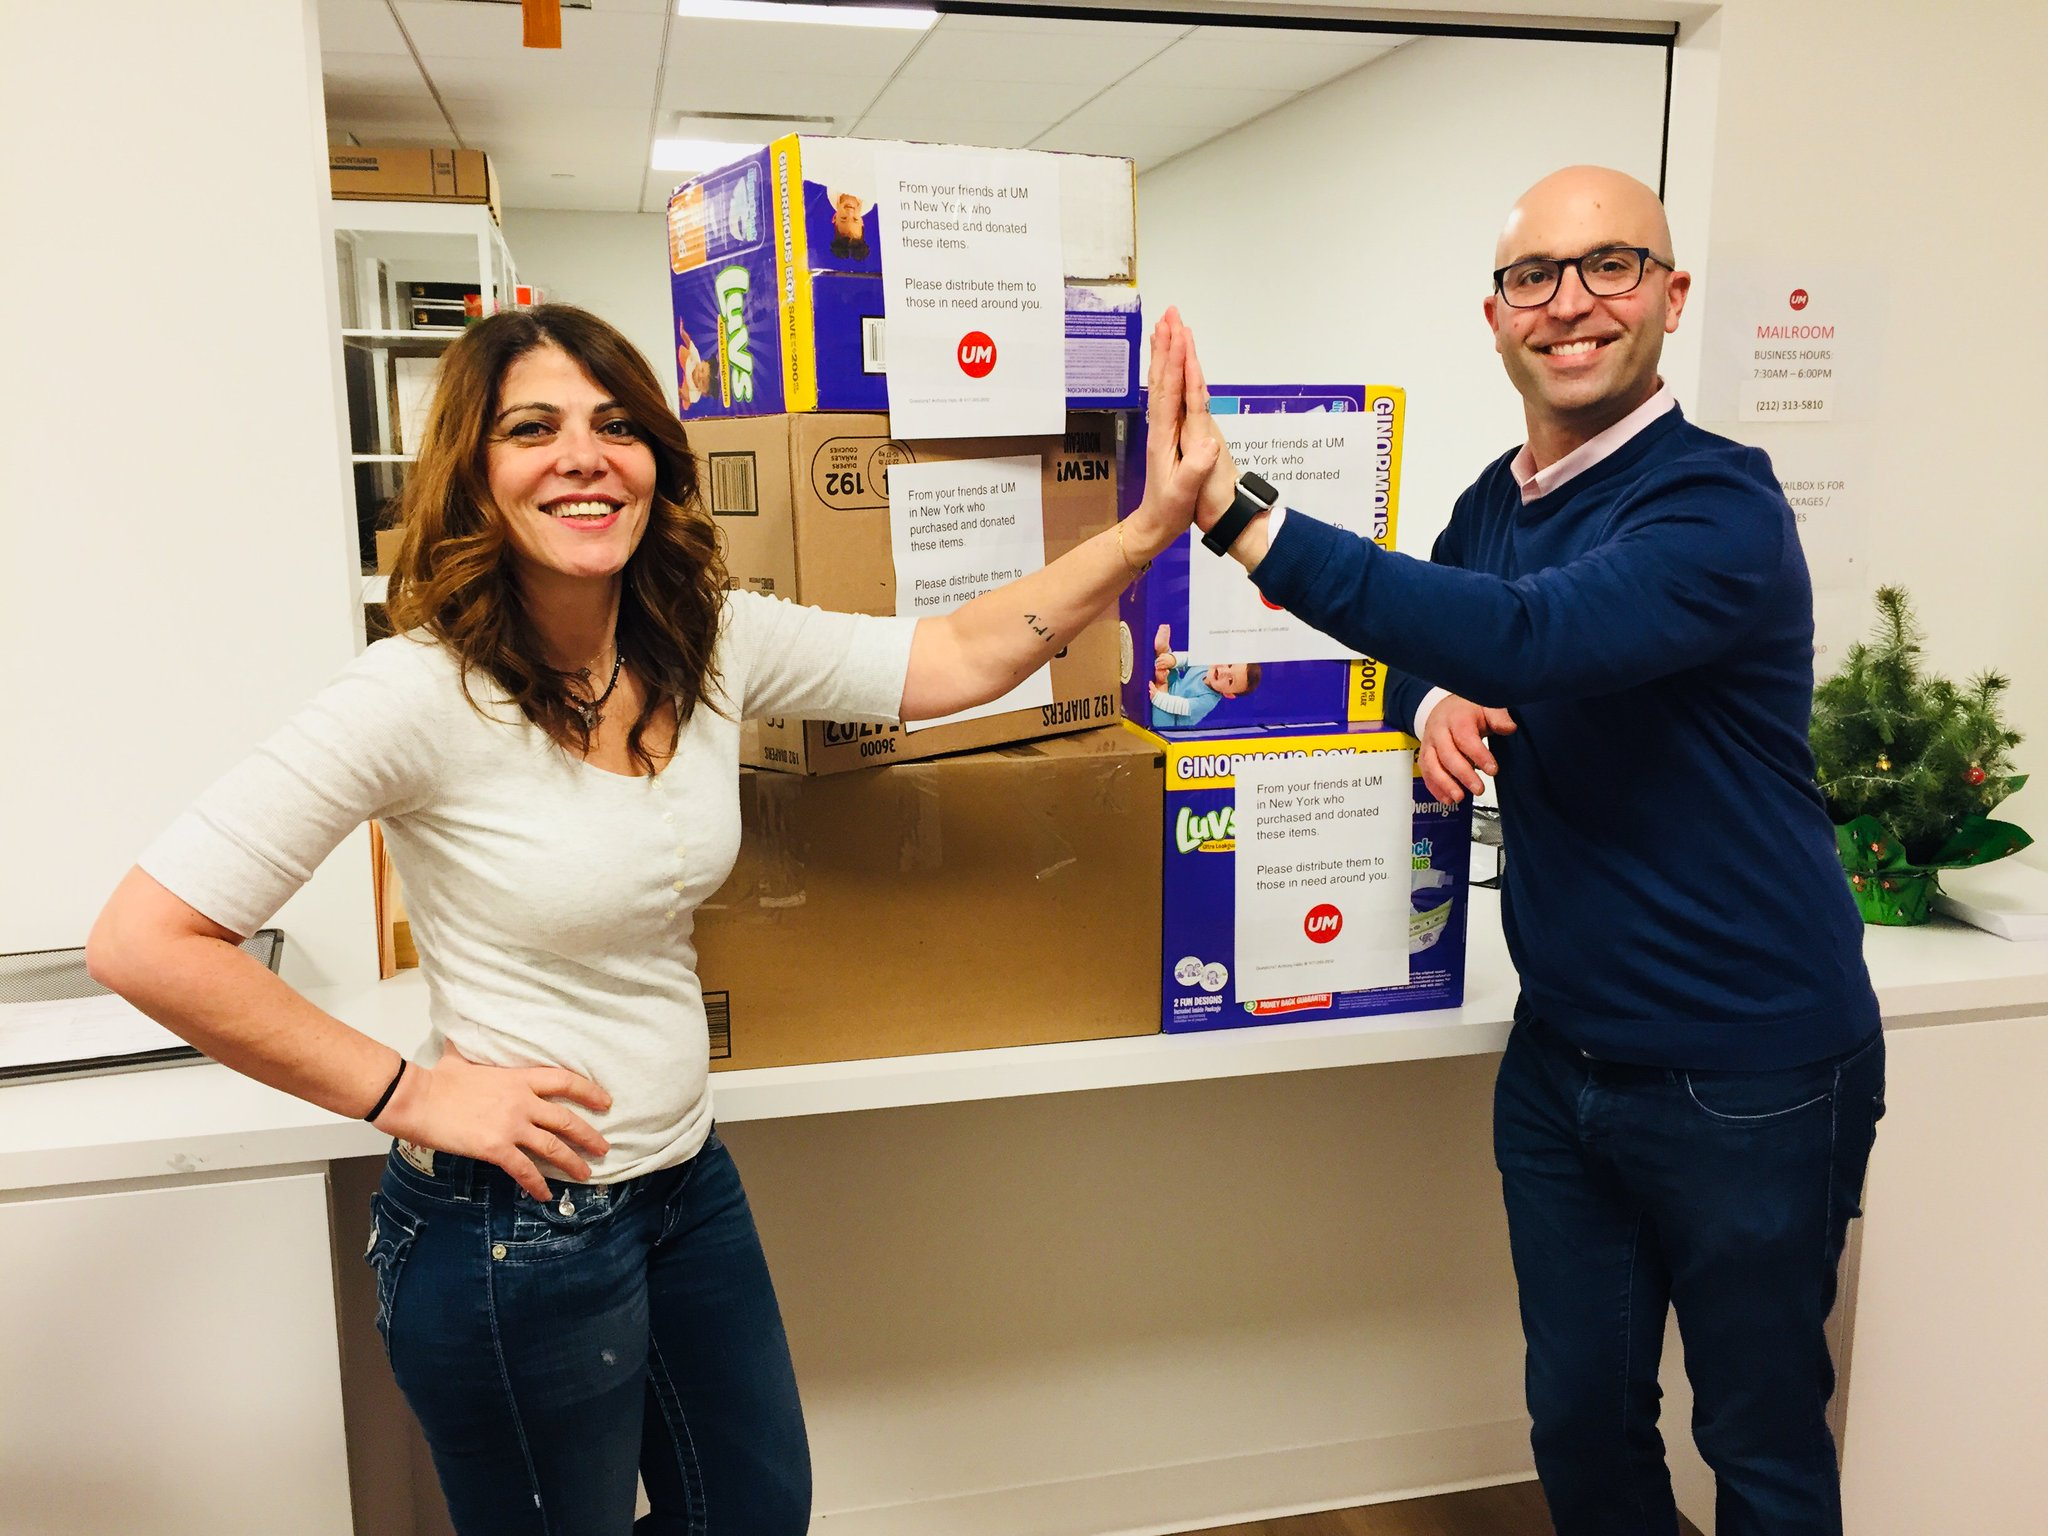 A big high five to UM NYers who purchased and donated  items for Puerto Rico families and friends of our employees! https://t.co/UWhUANq2jY